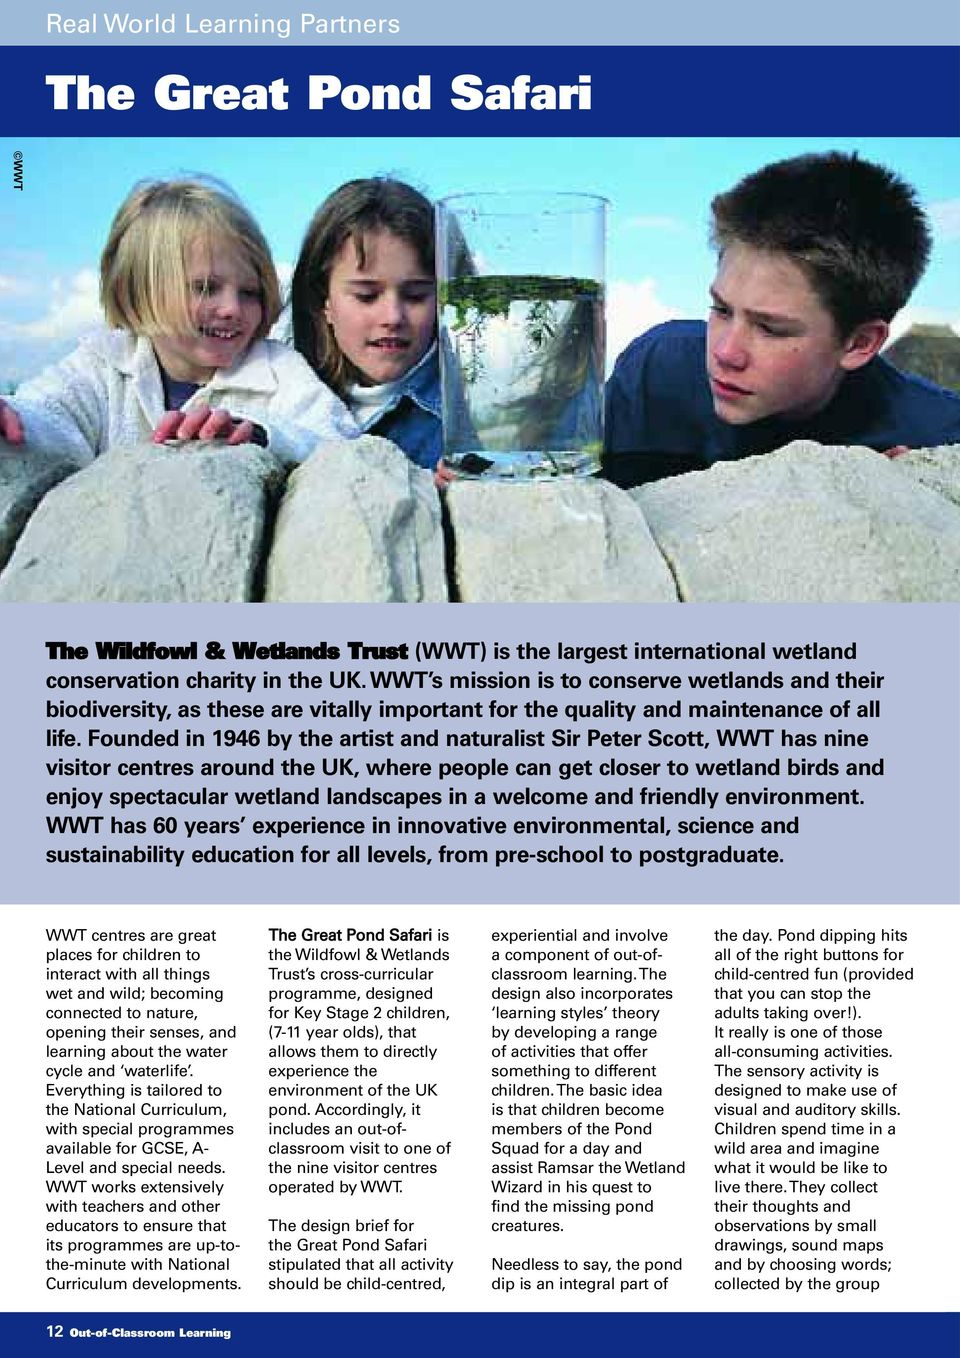 Founded in 1946 by the artist and naturalist Sir Peter Scott, WWT has nine visitor centres around the UK, where people can get closer to wetland birds and enjoy spectacular wetland landscapes in a